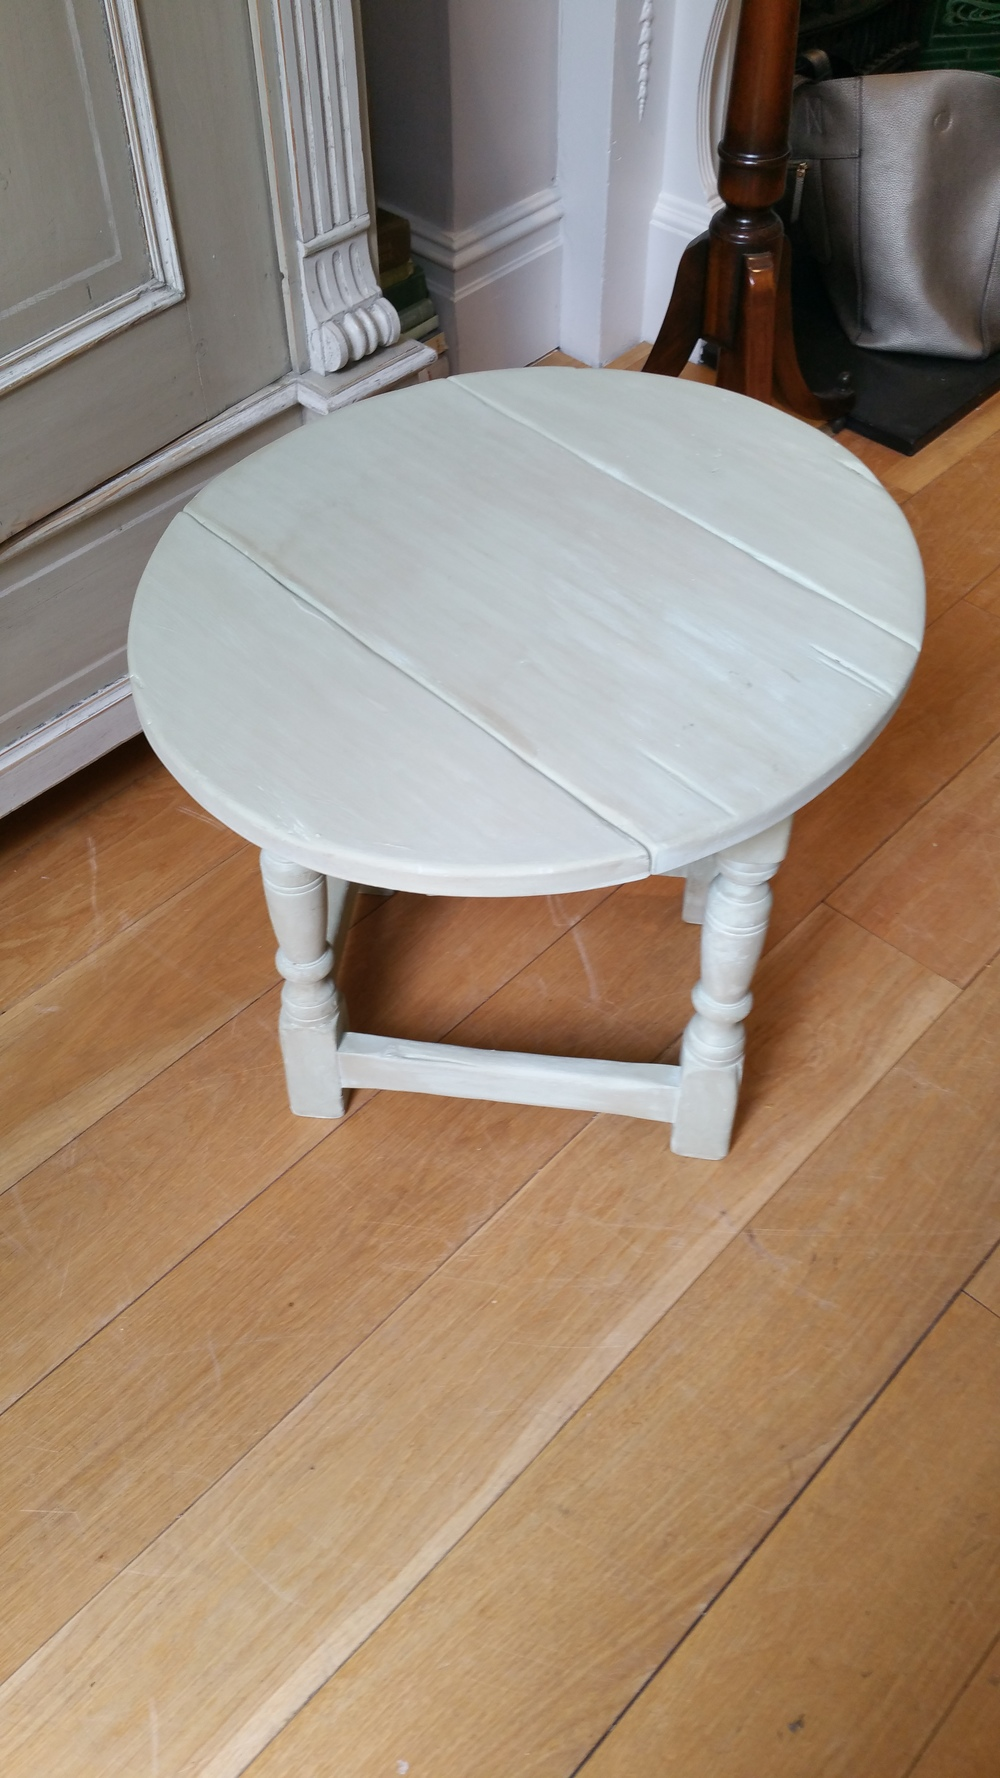 Small table - finished.jpg